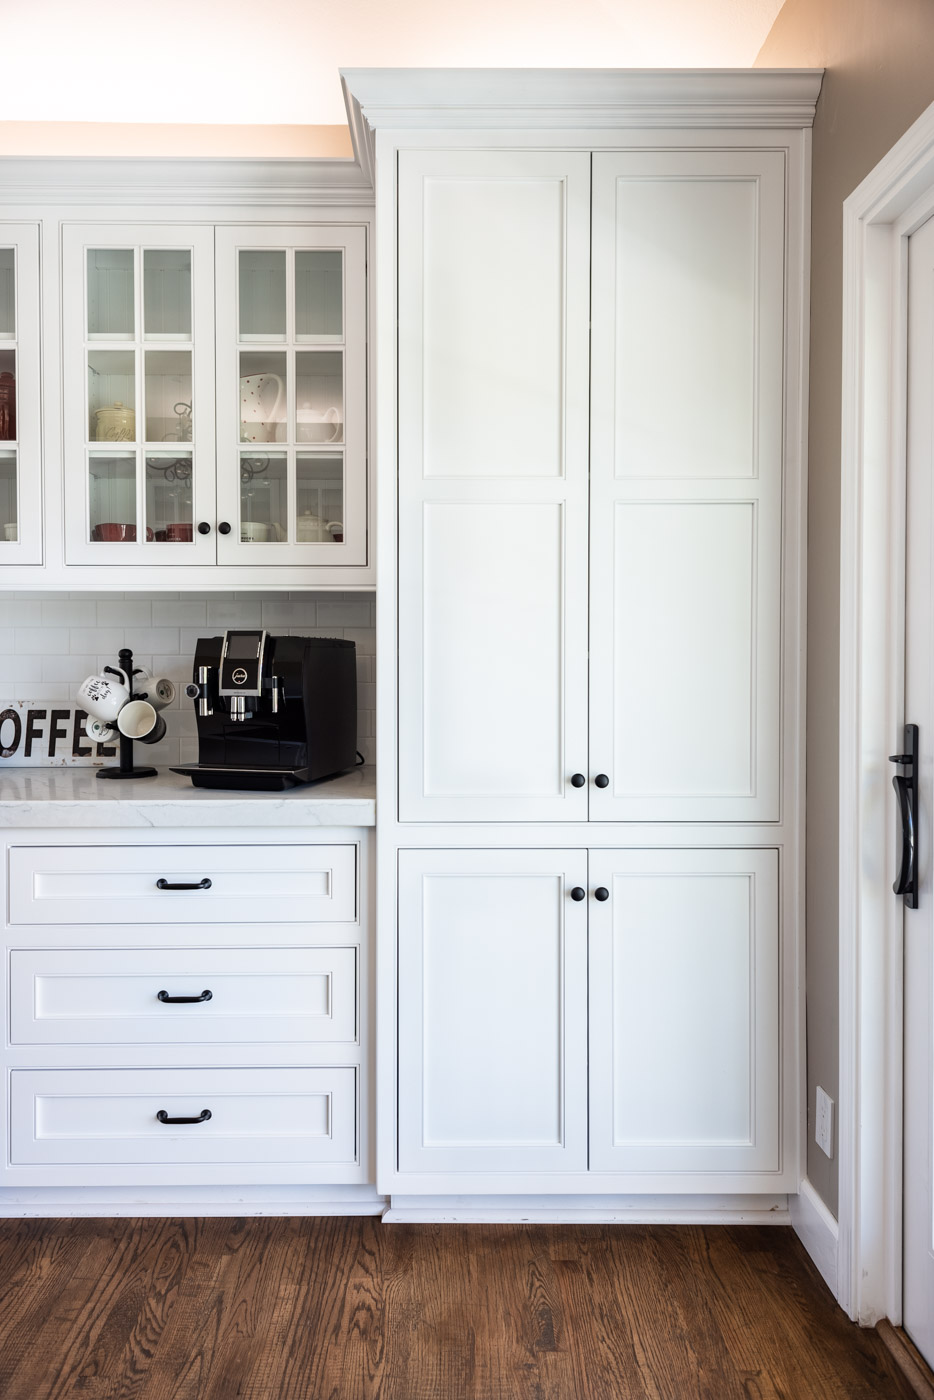 Transitional Country Cottage style kitchen with white recessed panel painted cabinets and pantry cabinet